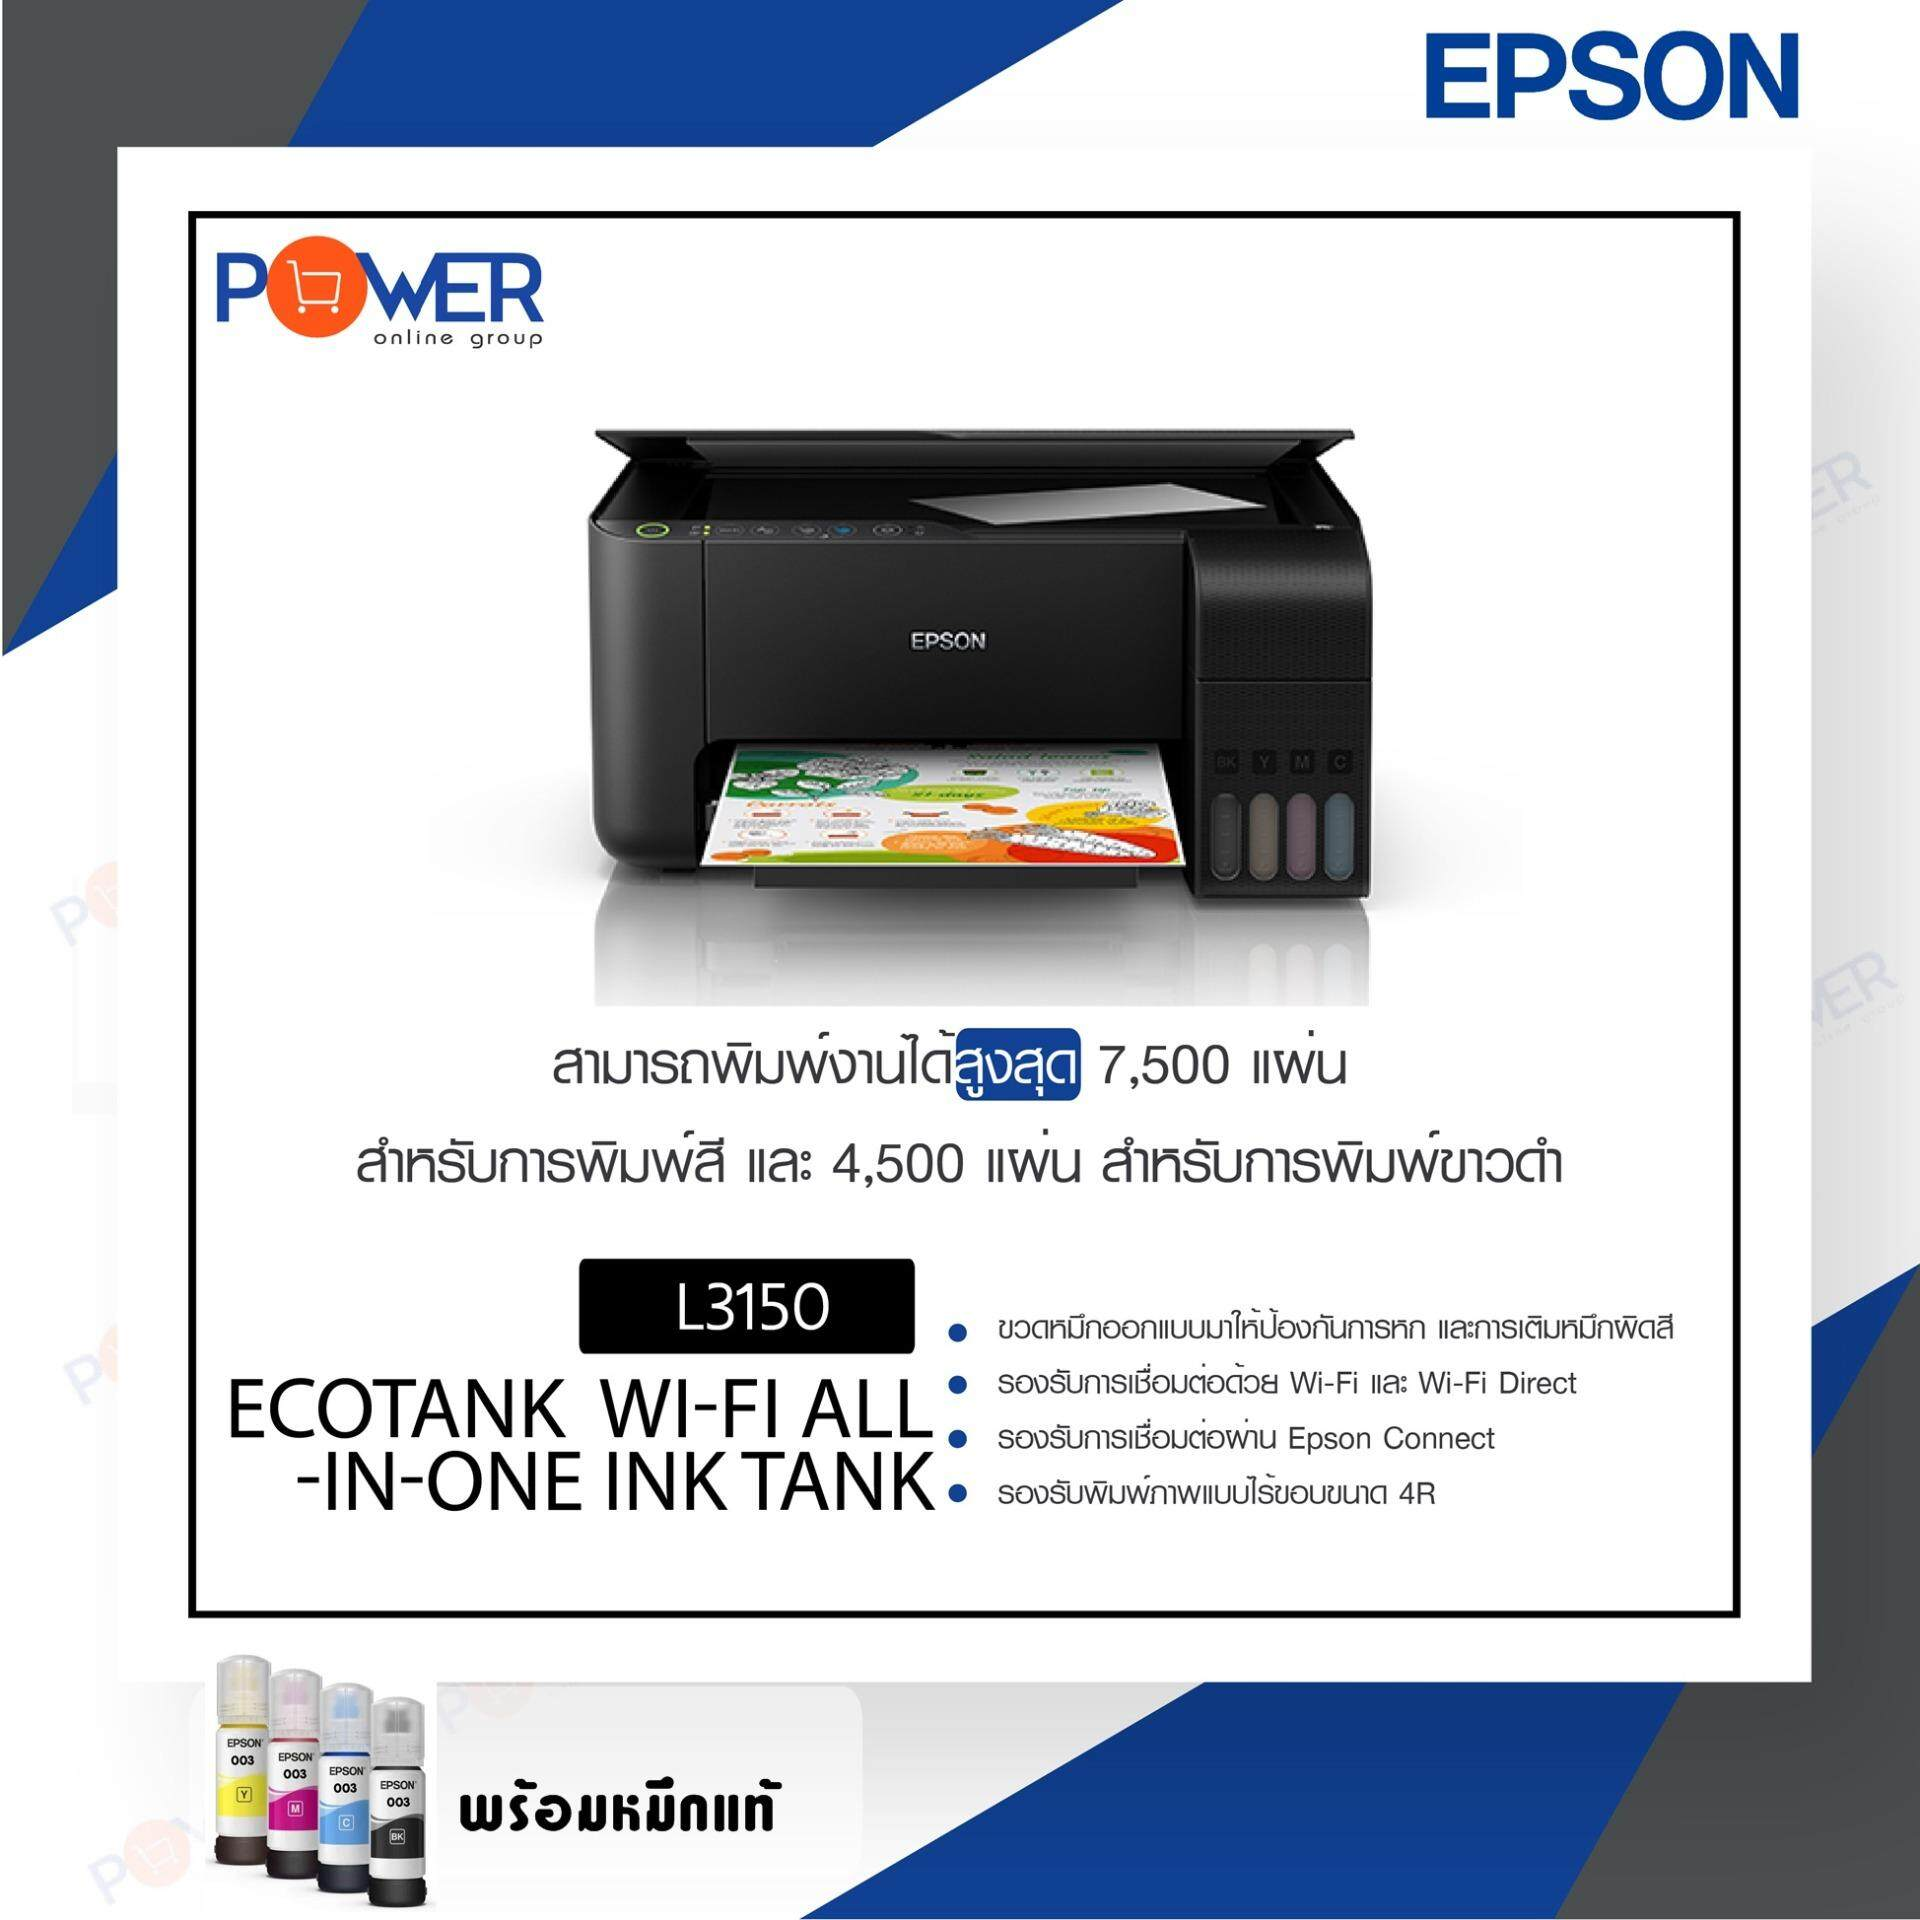 Epson Ecotank L3150 Wi-Fi All-In-One Ink Tank Printer (รับประกัน 2ปี)  ออกใบกำกับภาษีได้ By Power Online Group